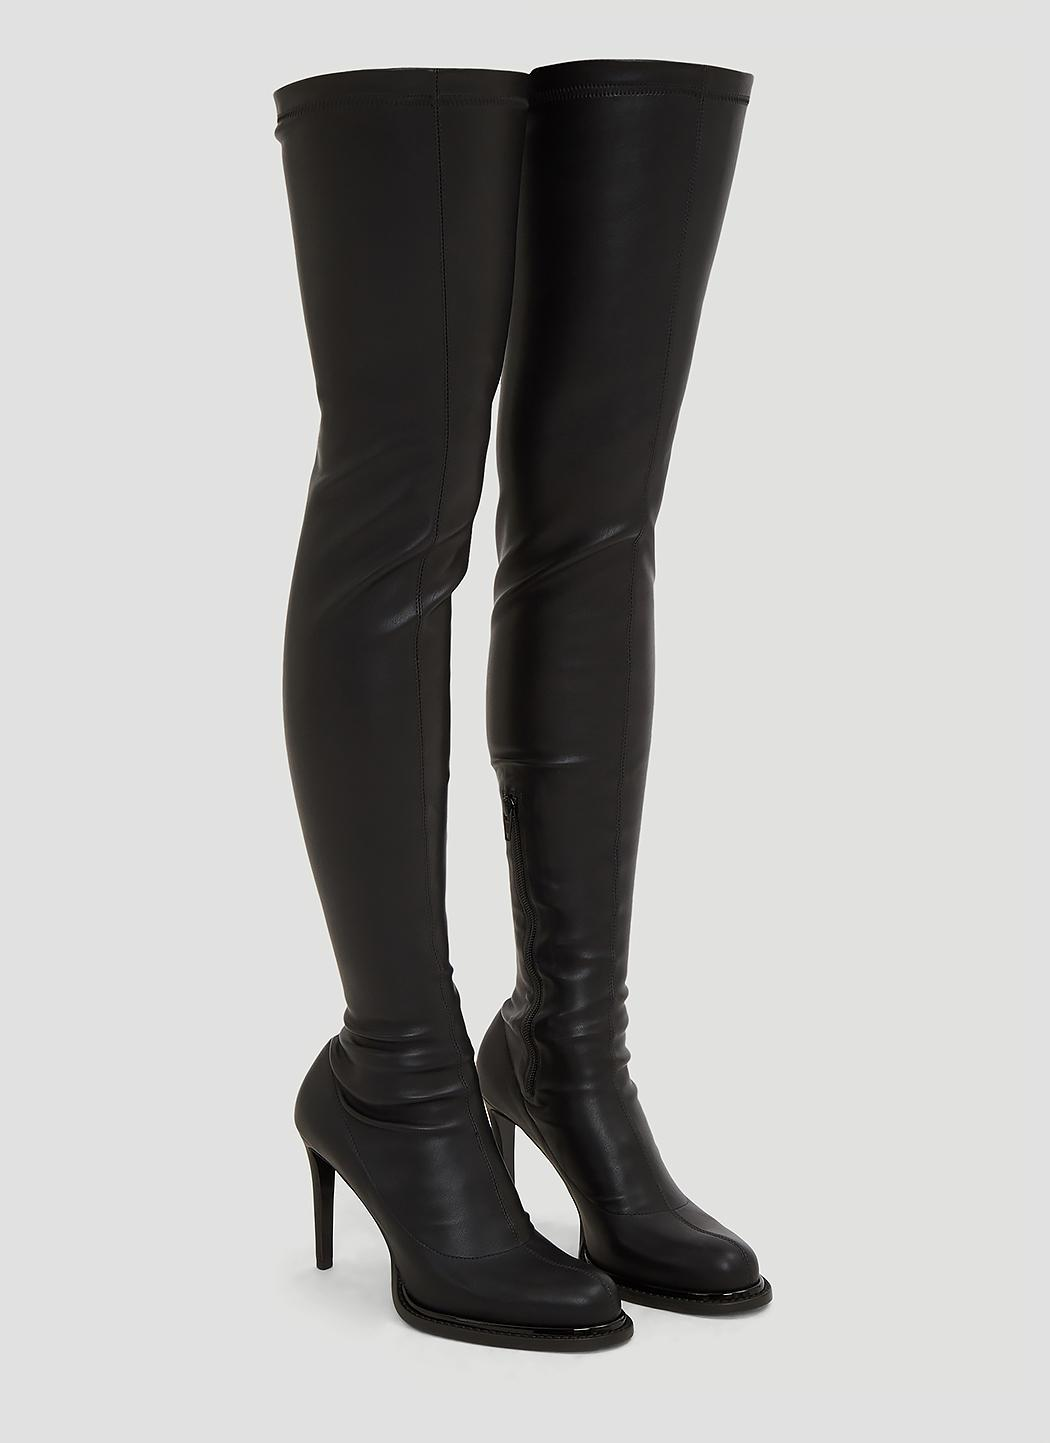 In Palmer Lyst High Boots Stella in Black Black Thigh Mccartney qHPwW5X